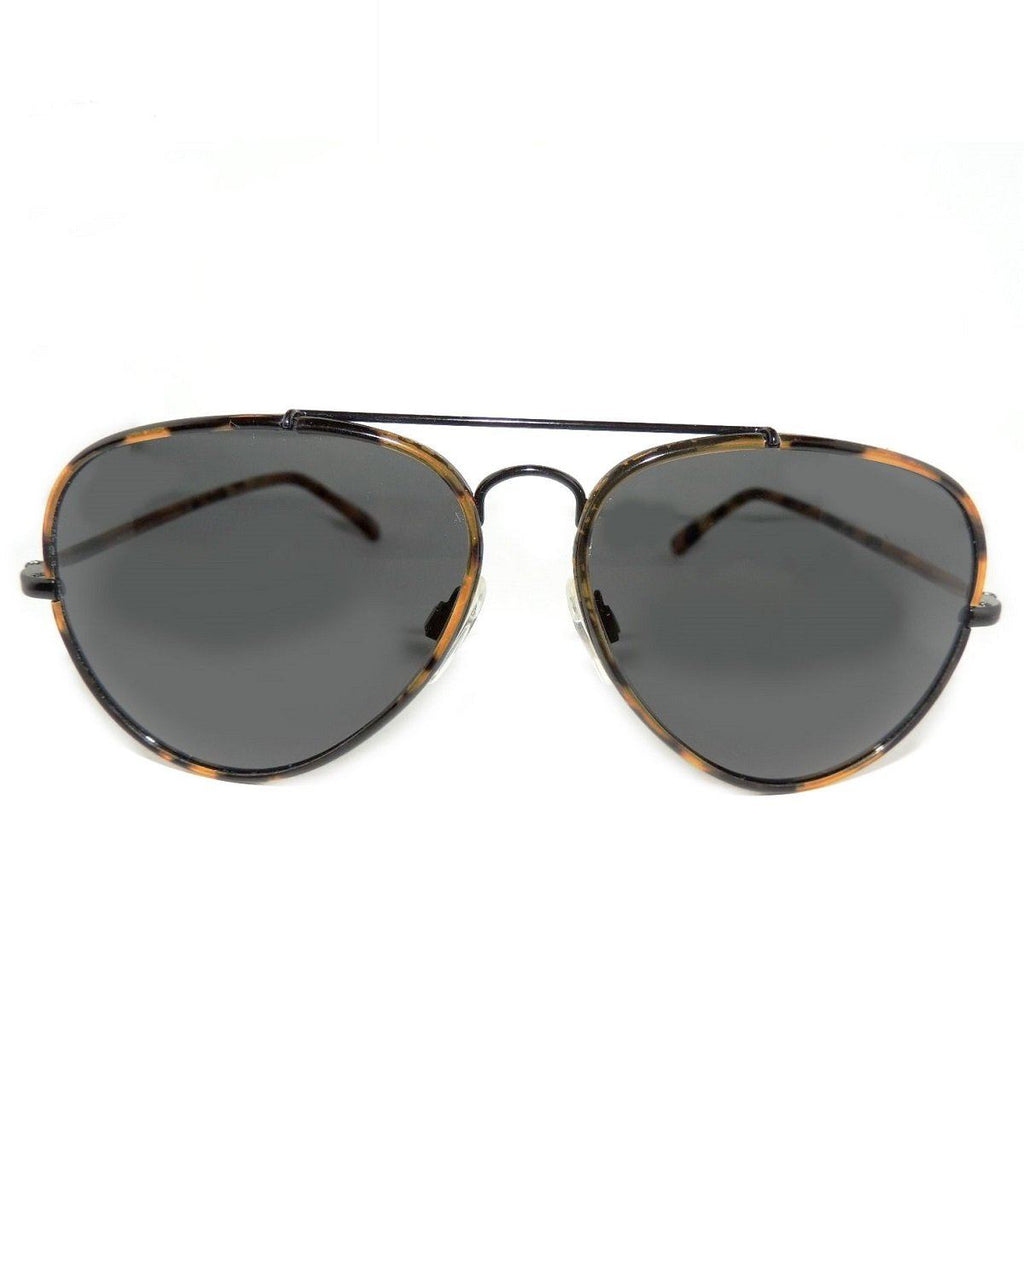 POLO RALPH LAUREN 3058JM 900387 SUNGLASSES